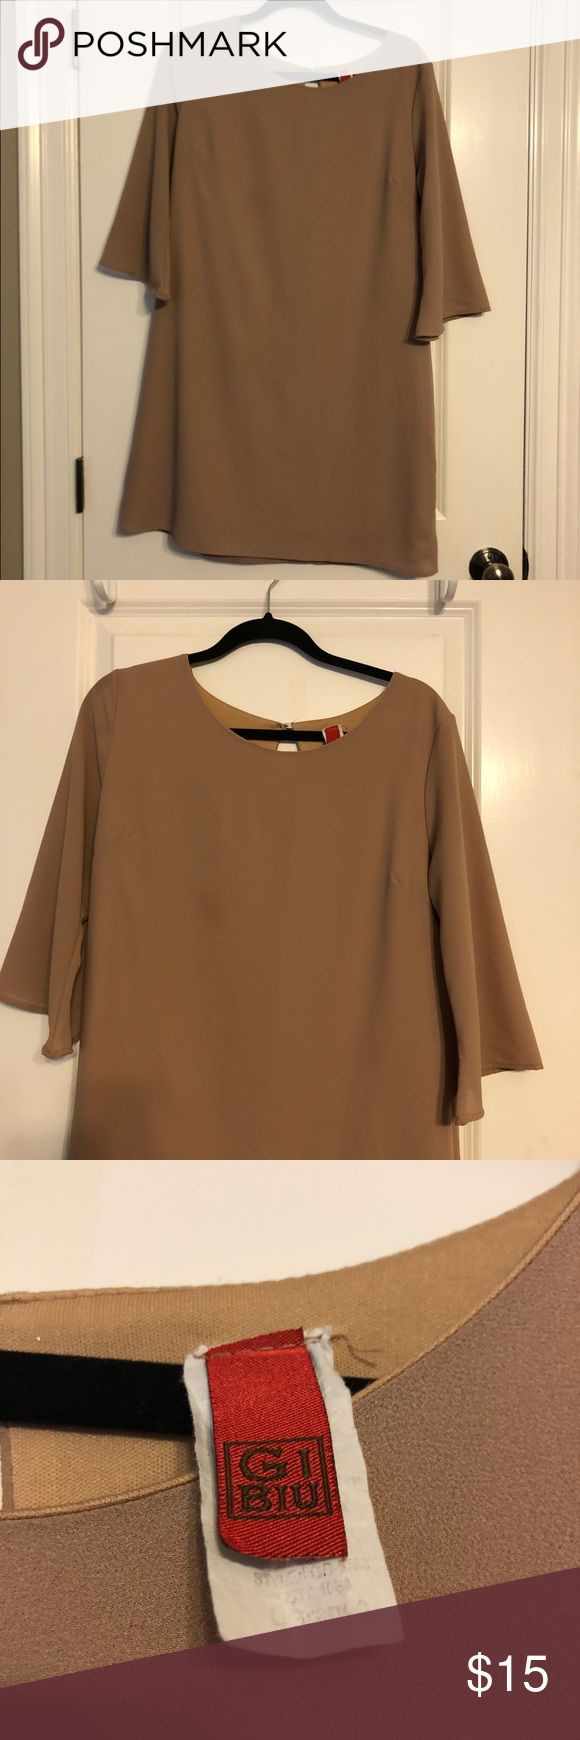 Nude Bell Sleeve Swing Dress Neutral dress, great for a formal or semi-formal event. 3/4 bell sleeves. Button closure back. 100% Polyester. Fully lined. Size L, could also fit M Vintage Dresses Long Sleeve